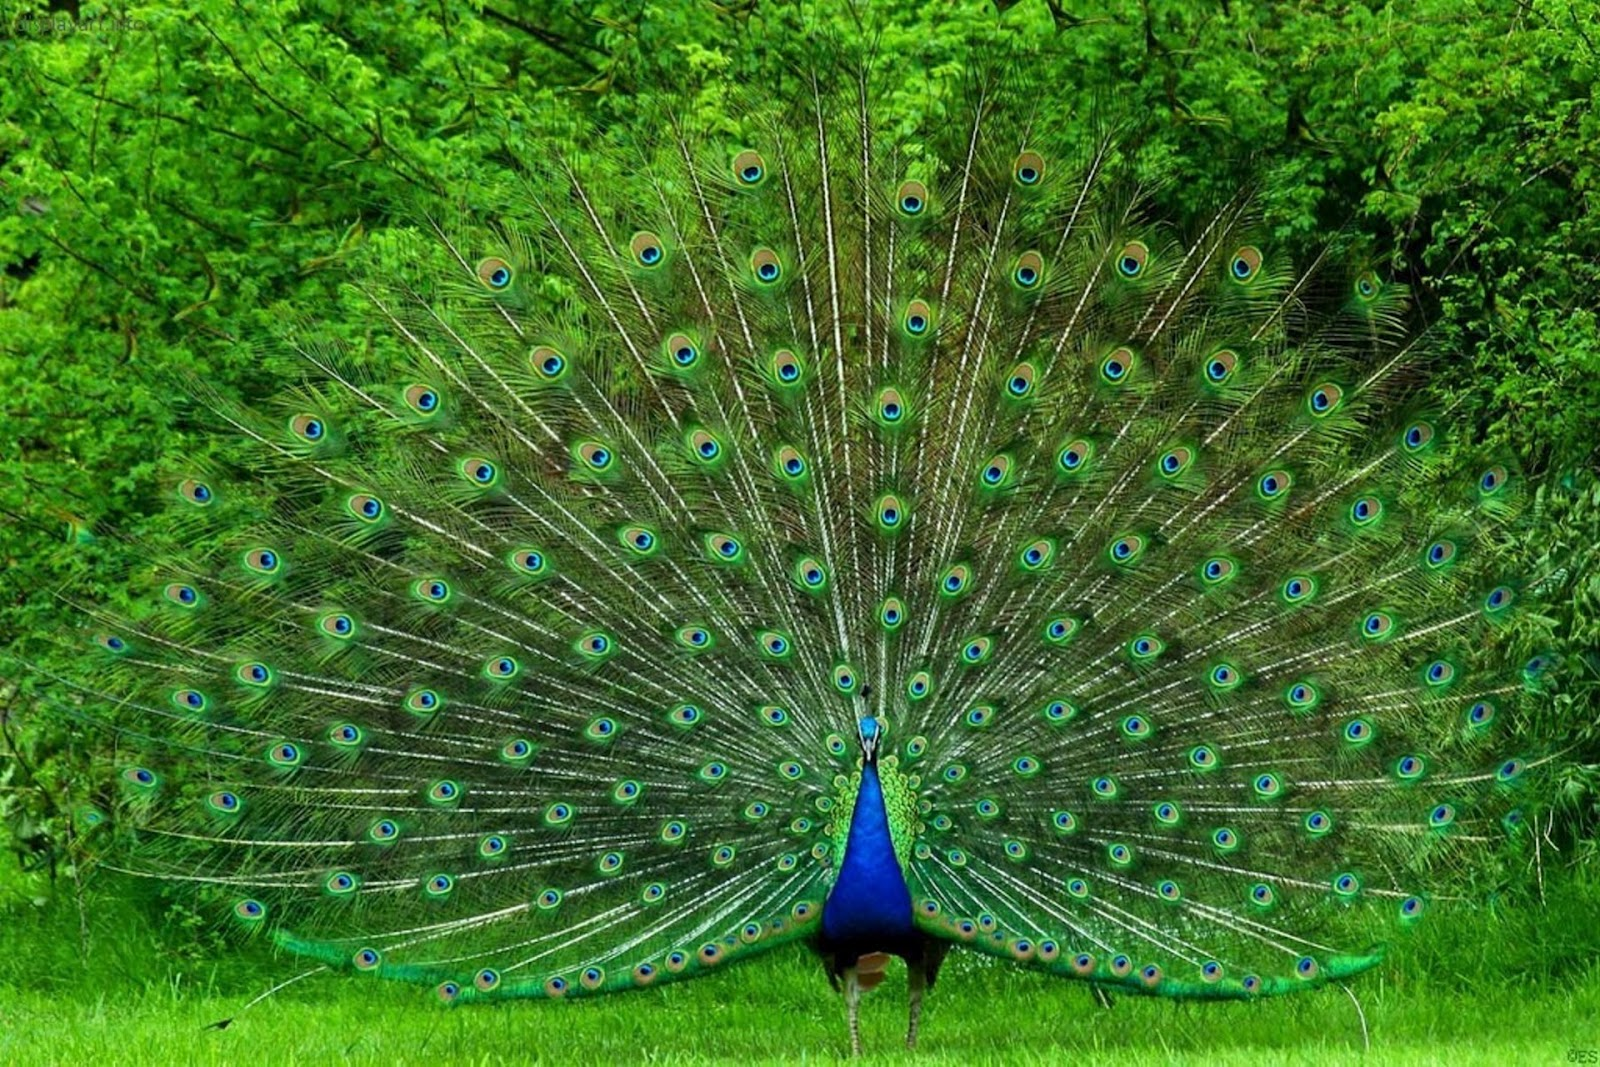 Most Beautiful WallpapersPeahen Wallpapers In HDPeahen Pics HDPeacock For DesktopWallpapers DesktopPeacock Mobile